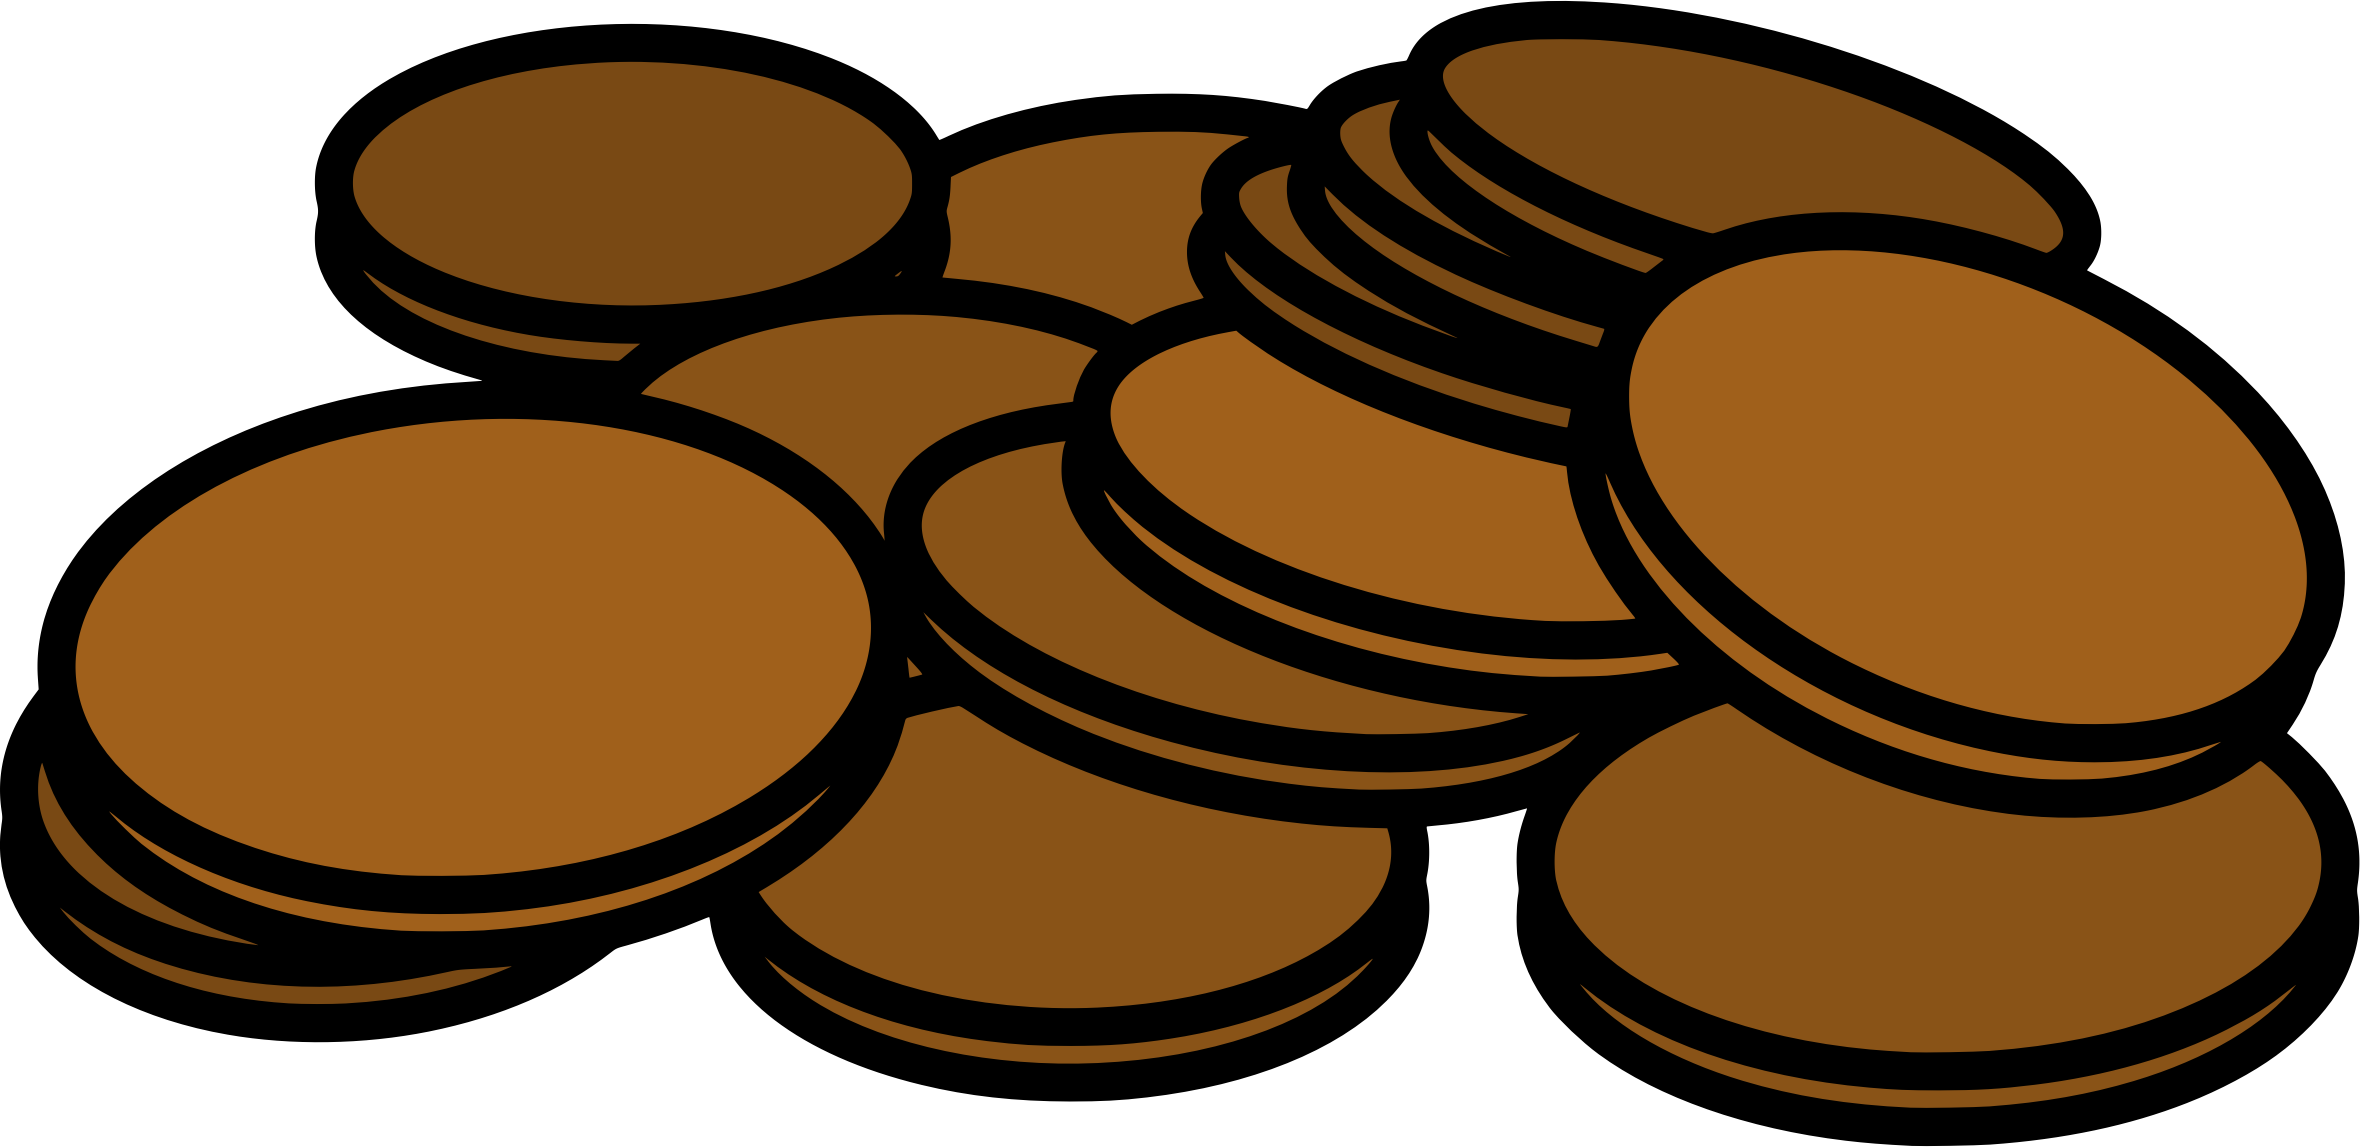 Penny penny penny png. Clipart pennies big image